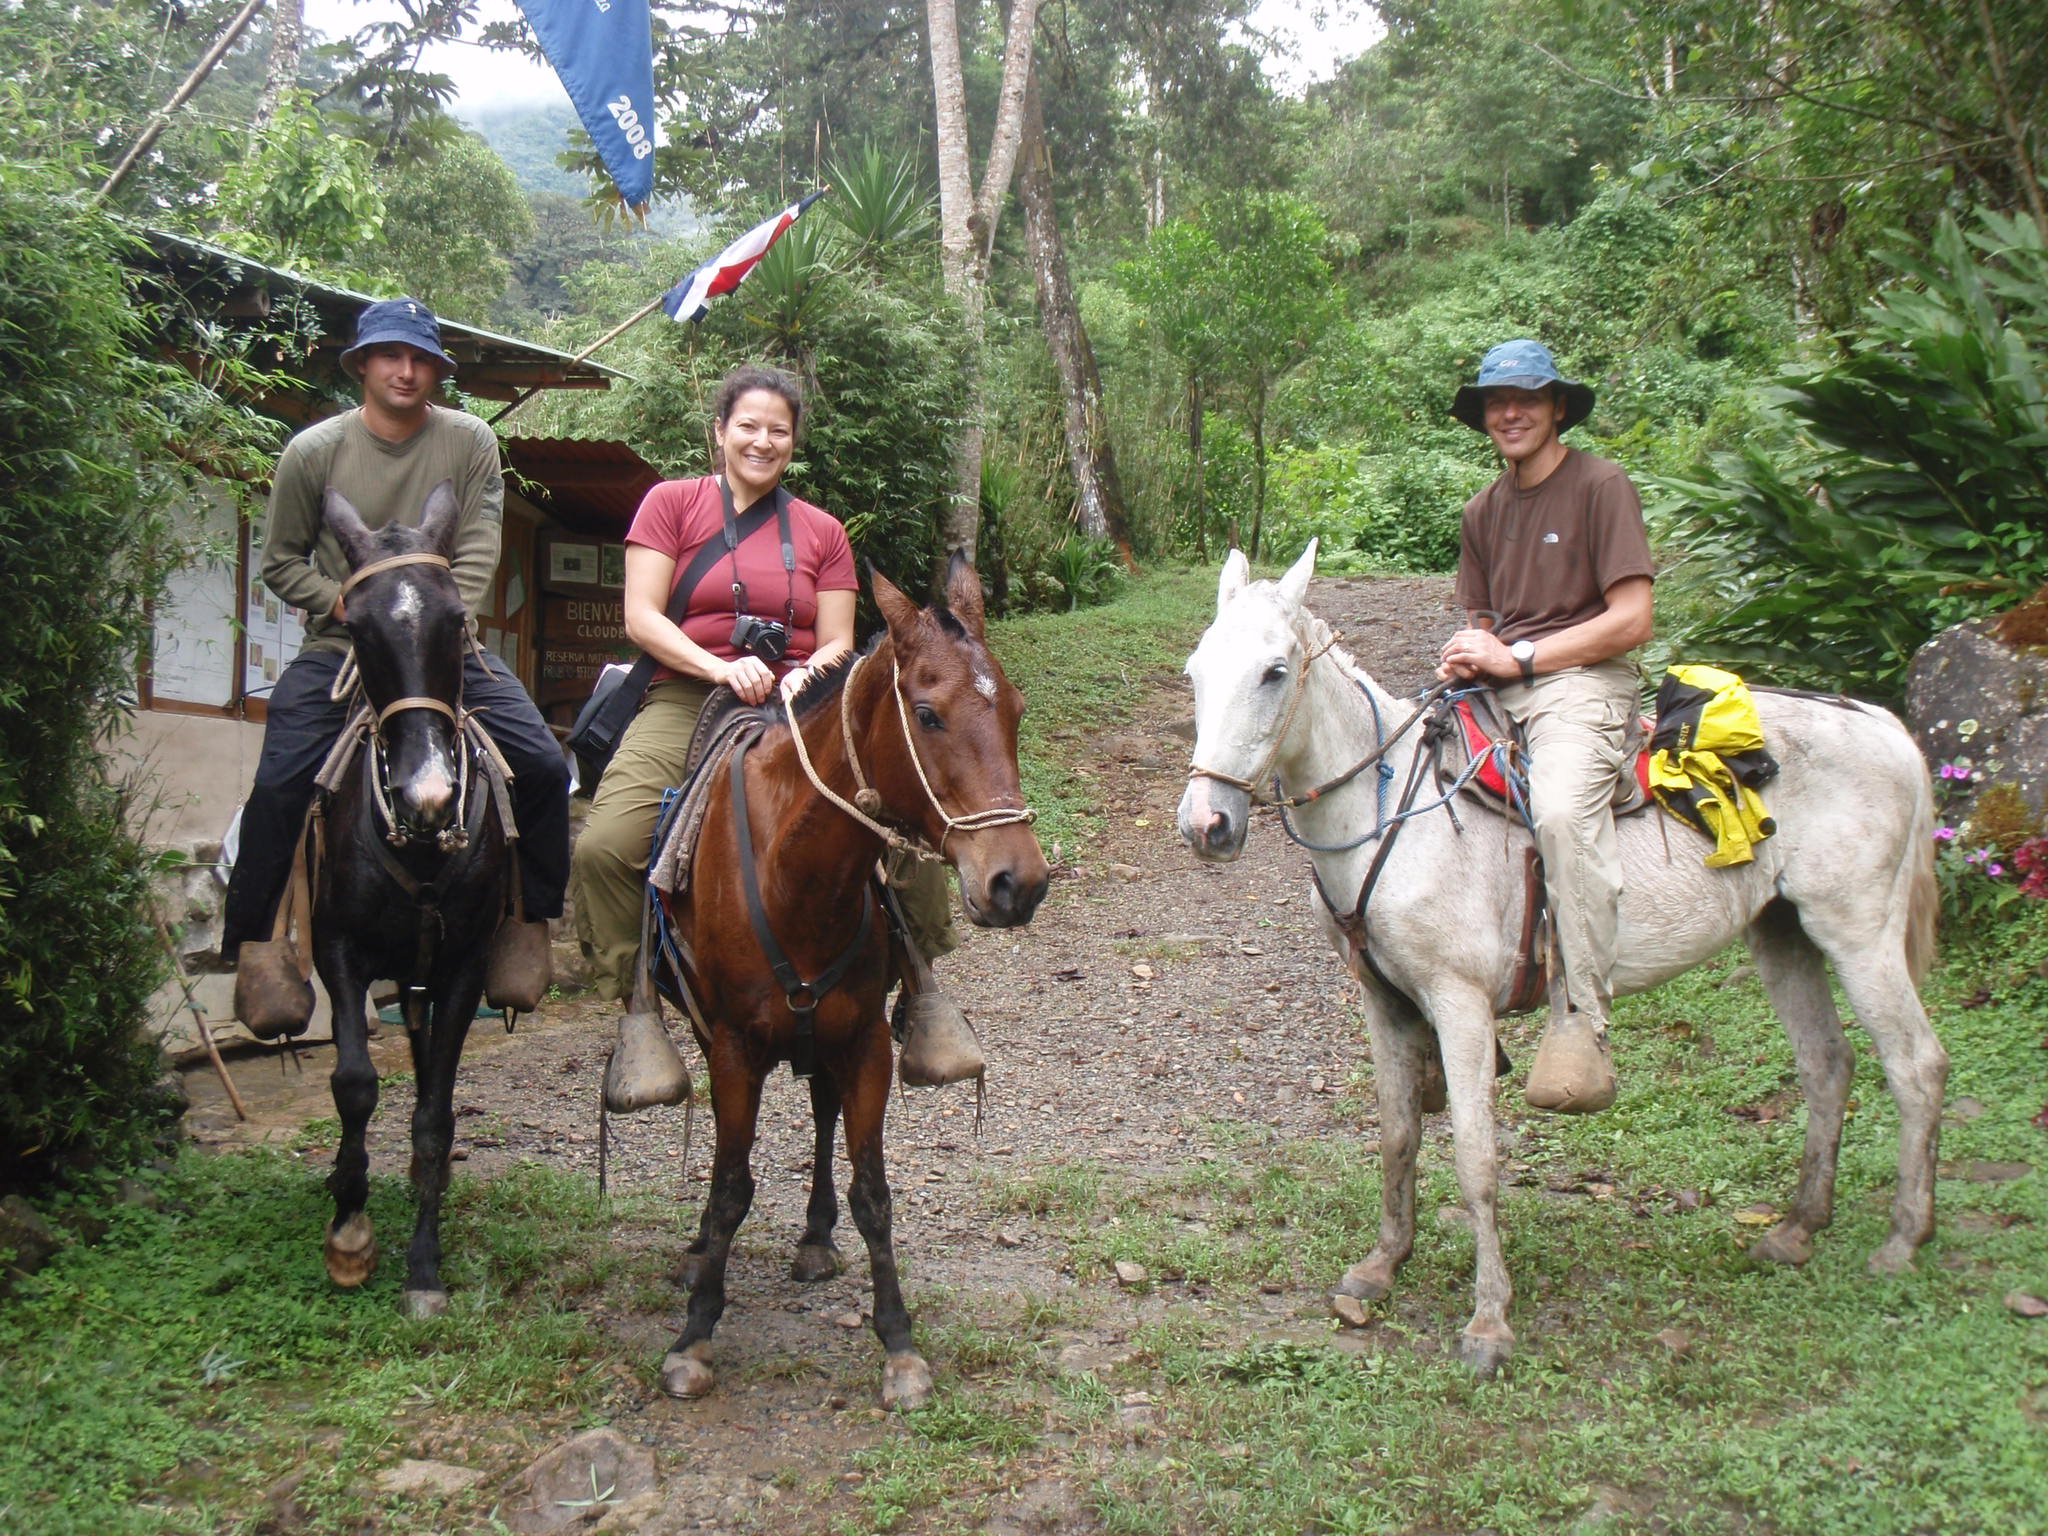 Jill and I with guide Oscar during horseback ride to waterfall in Costa Rica